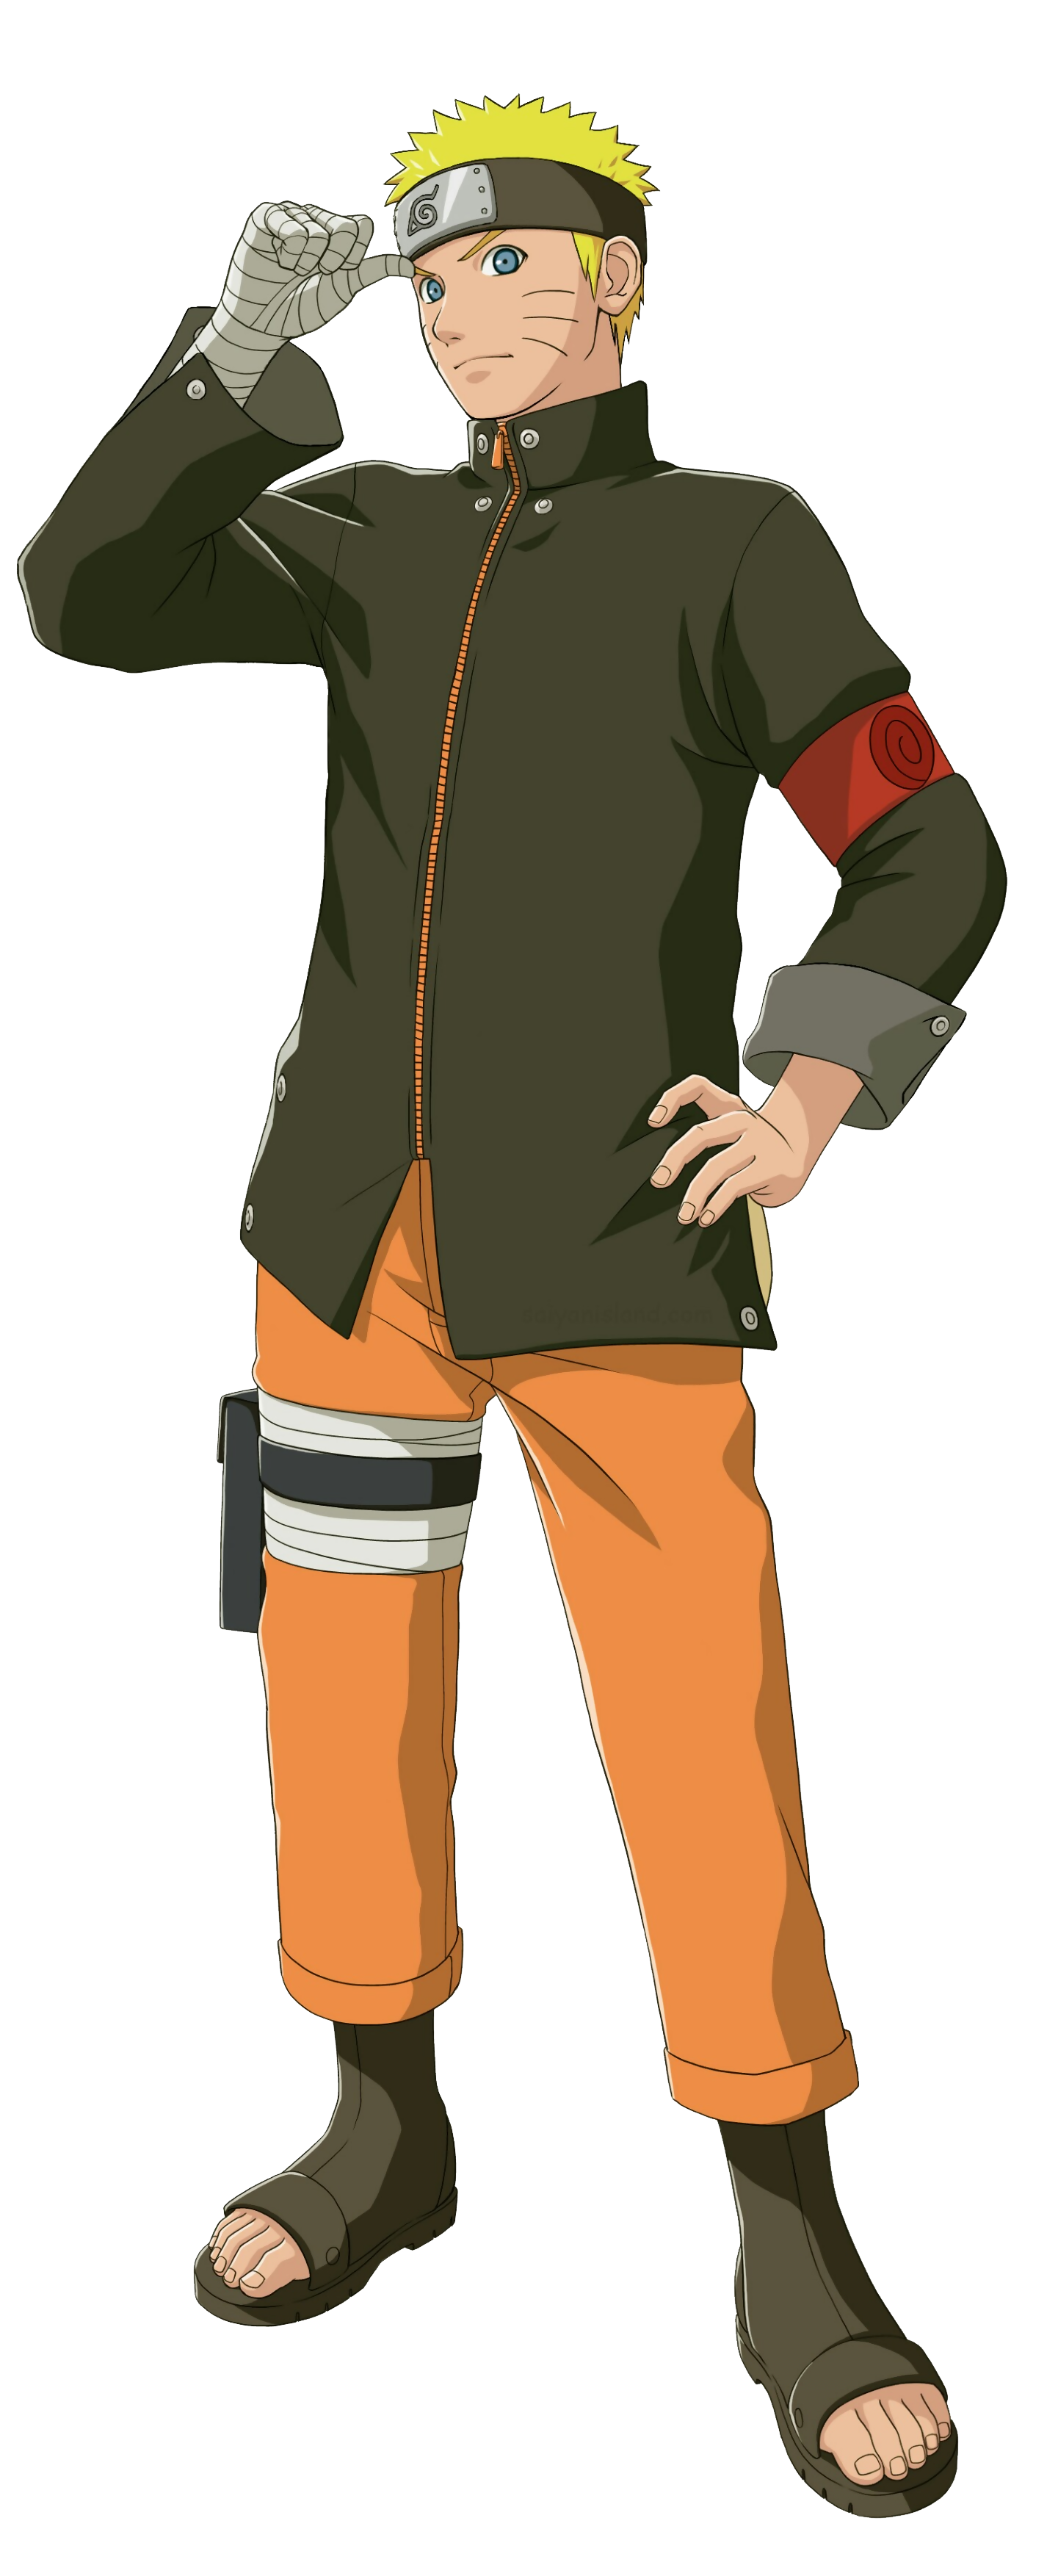 Naruto The Last Image PNG Image